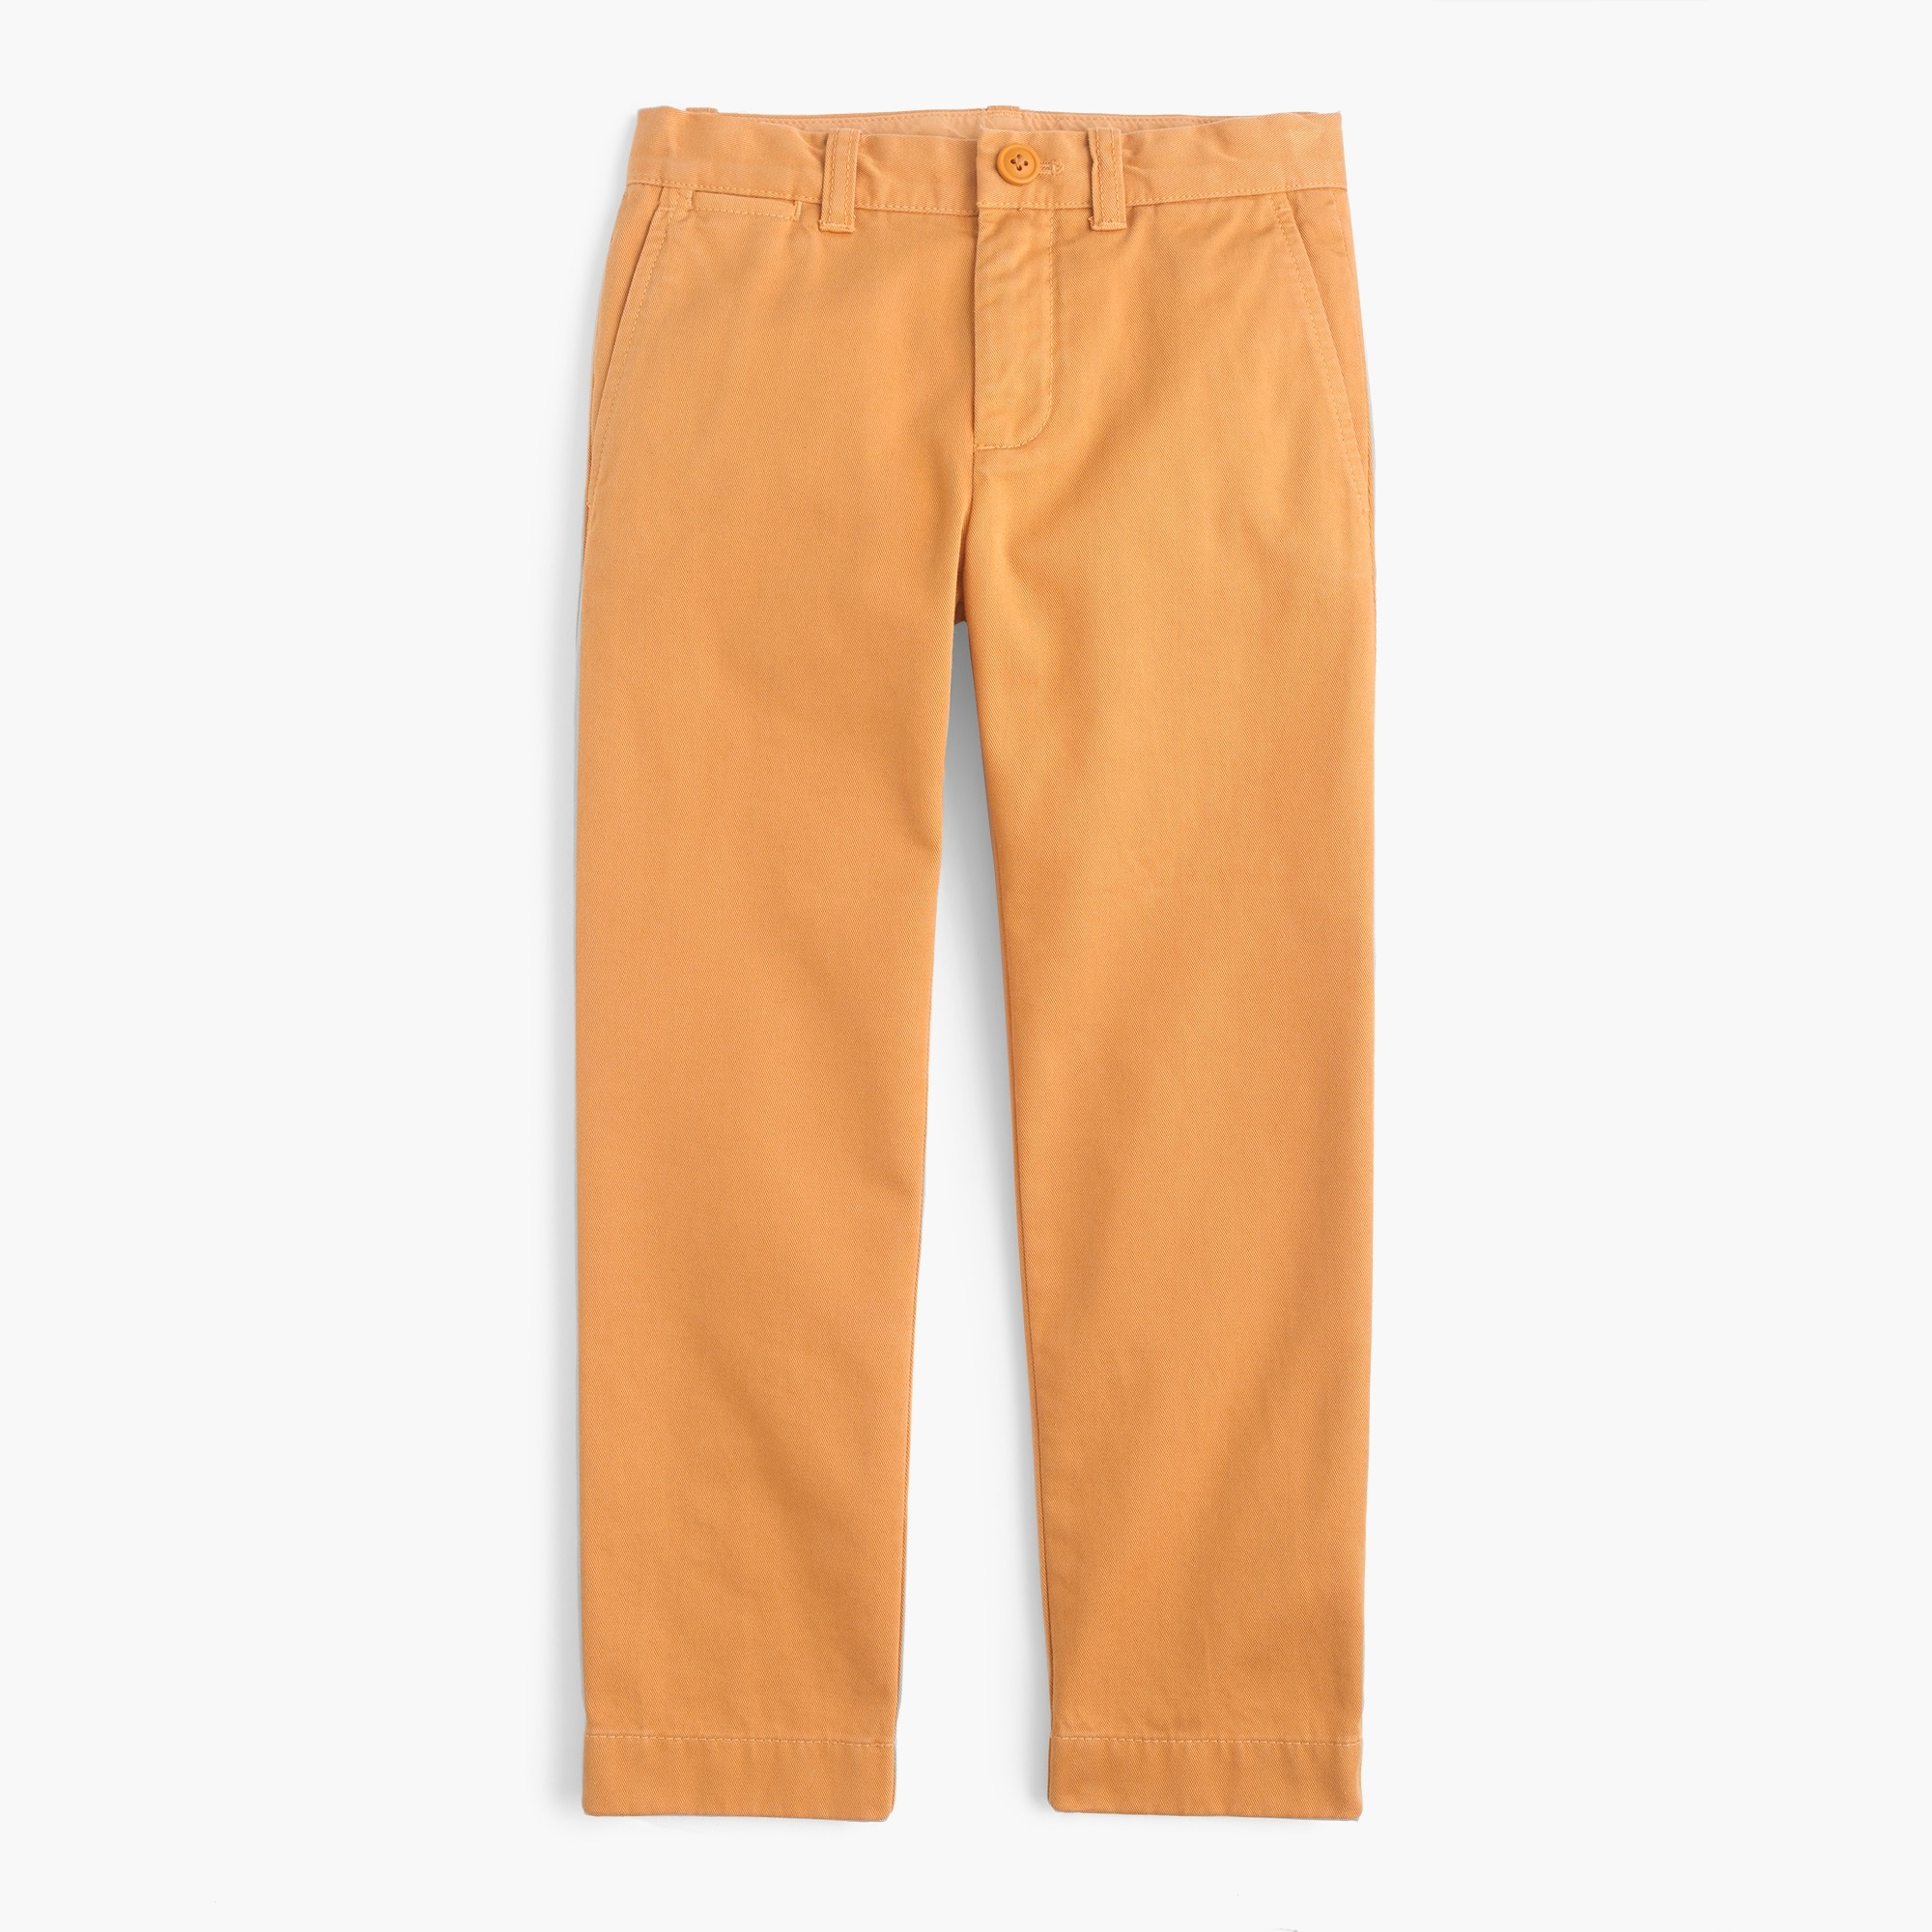 Image 2 for Boys' garment-dyed chino pant in slim fit